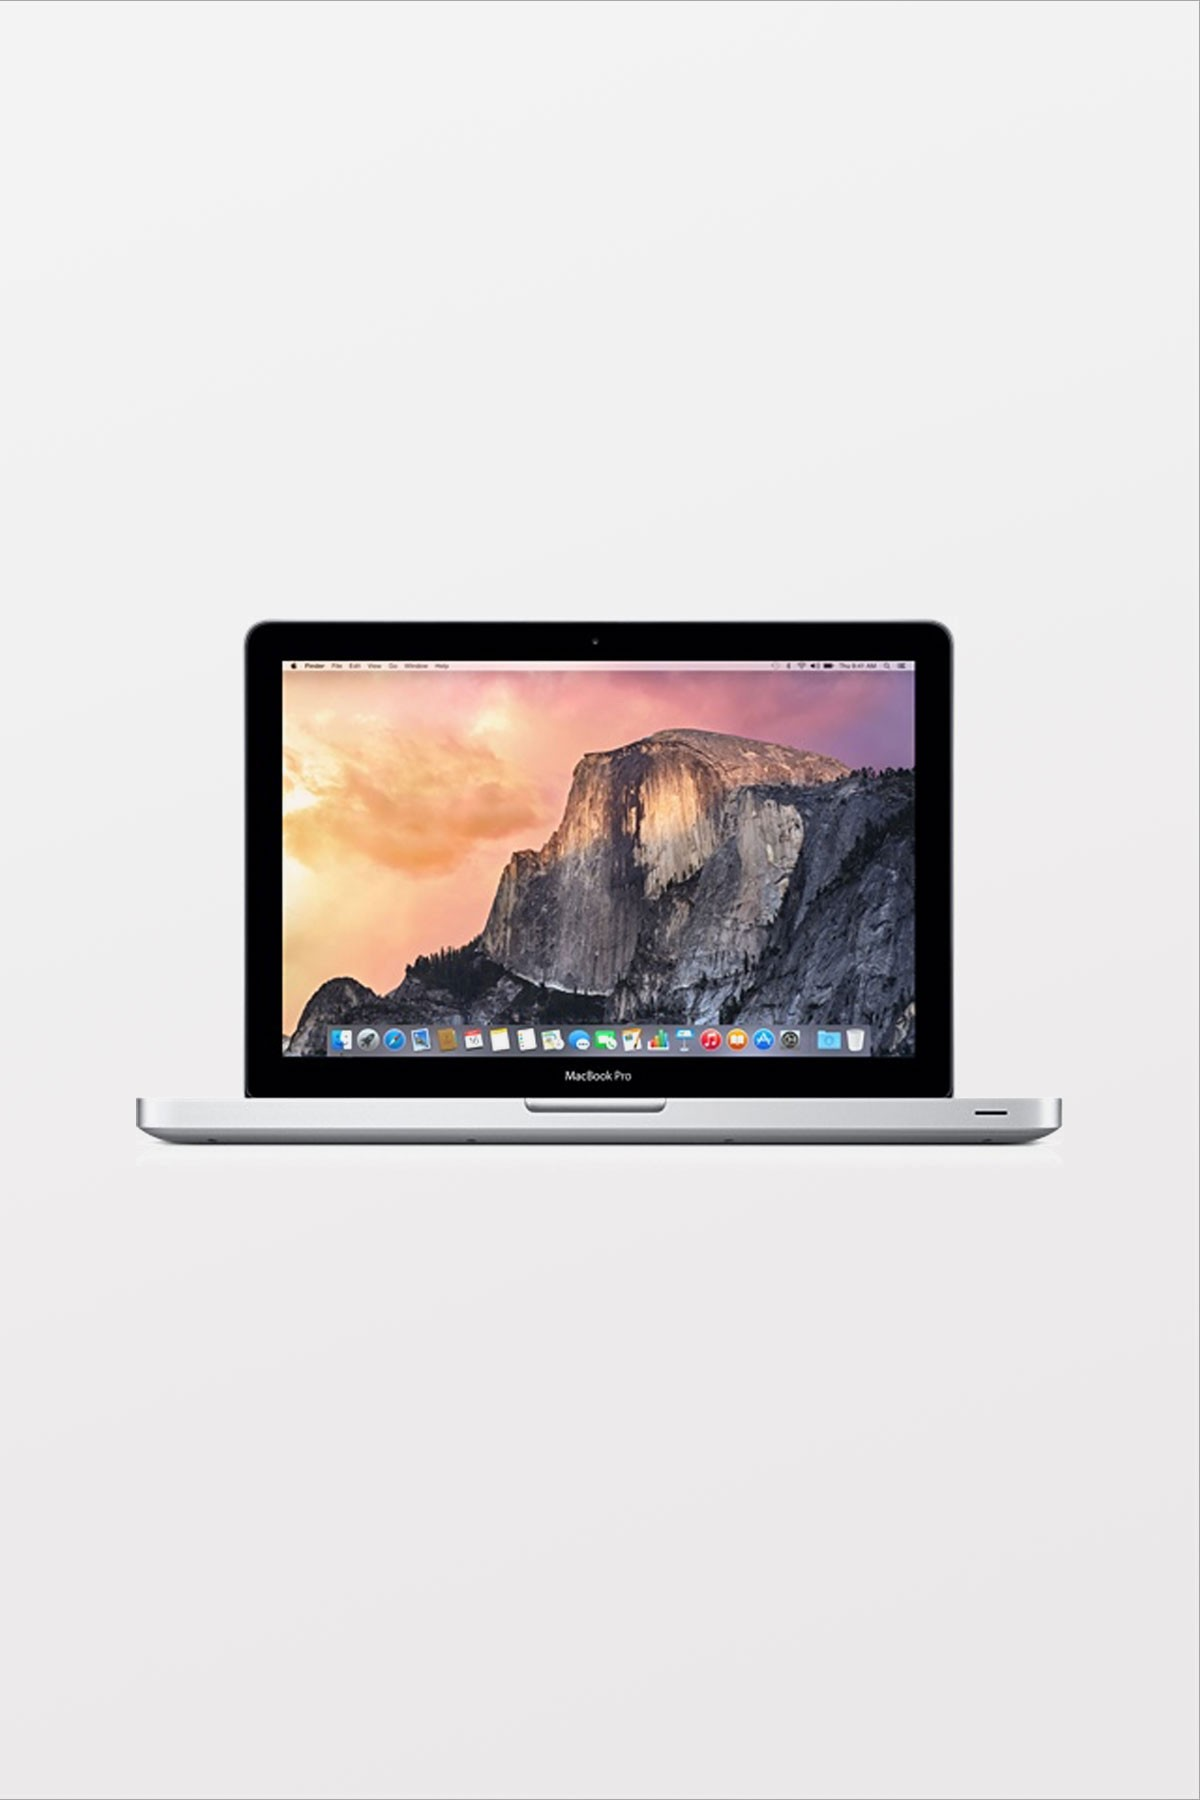 Apple MacBook Pro 13-inch: 2.5GHz i5 / 4GB Memory / 500GB Hard Drive / SuperDrive - Refurbished